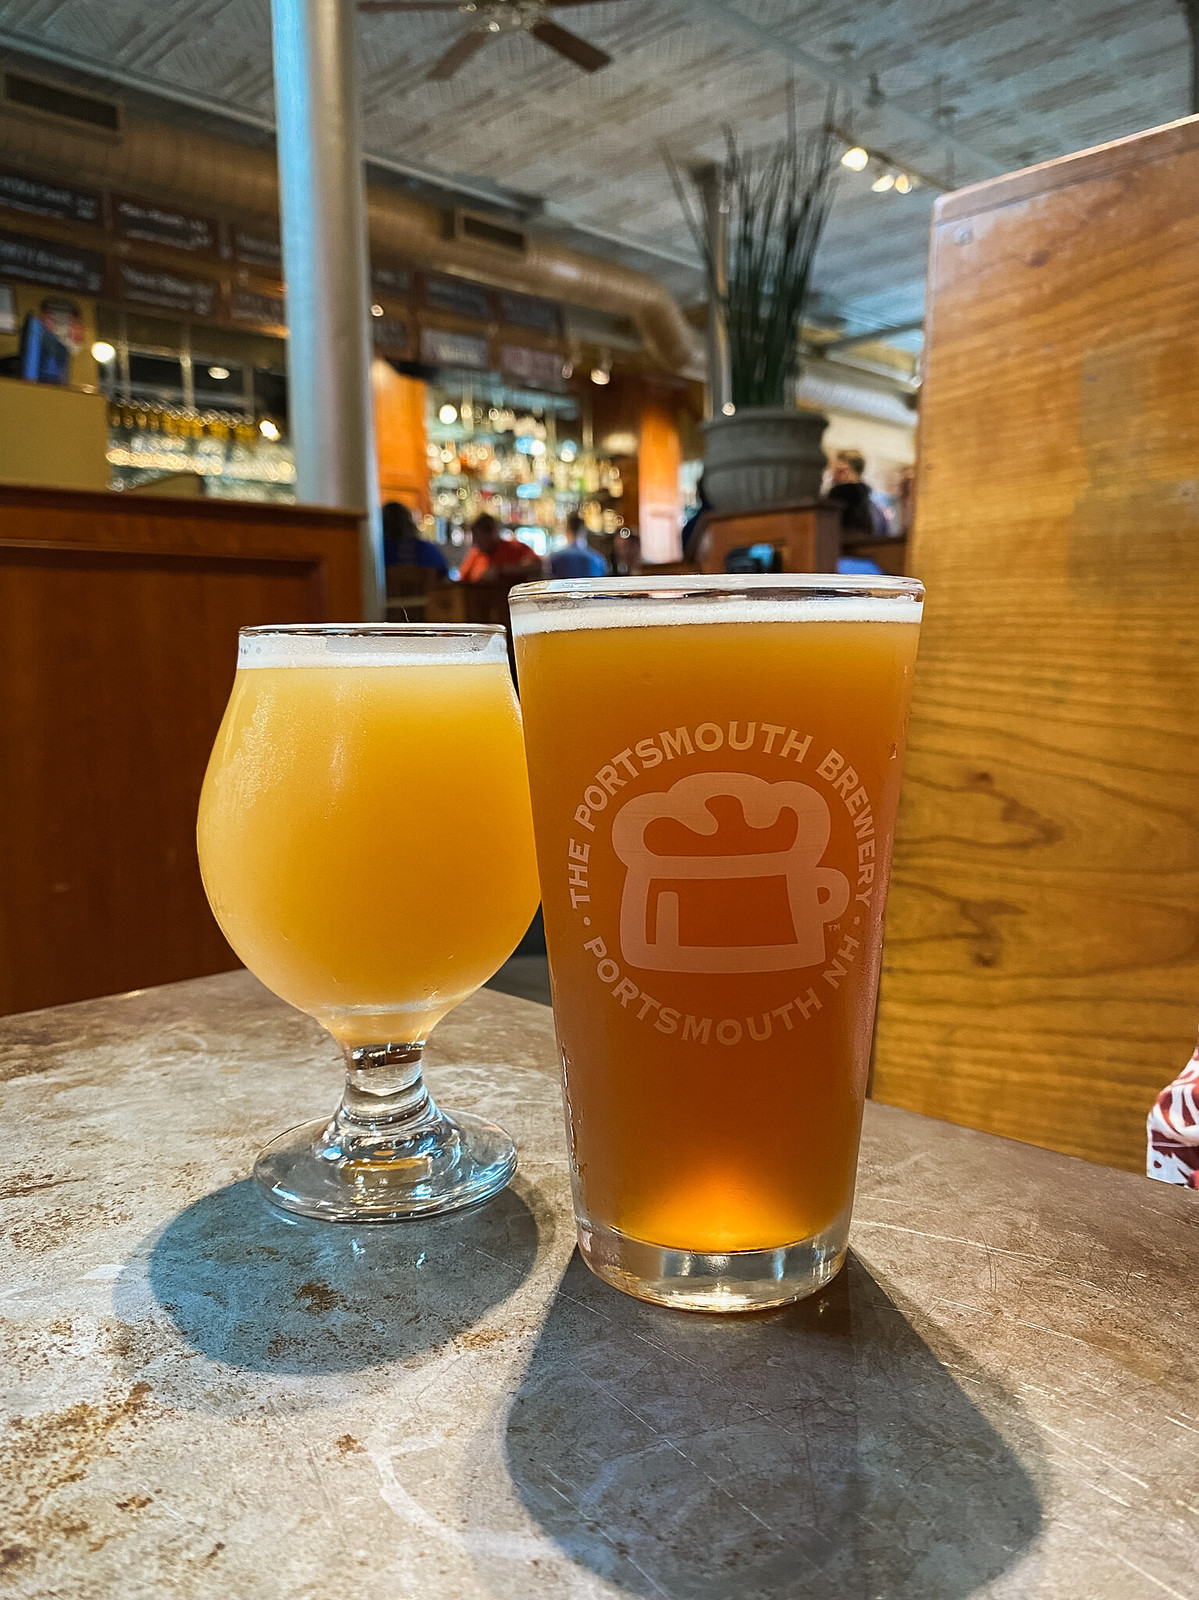 Portsmouth Brewery | Best Portsmouth Restaurants | Where to eat in Portsmouth, NH | Portsmouth New Hampshire Travel Guide | Weekend in New England | Things to do in Portsmouth